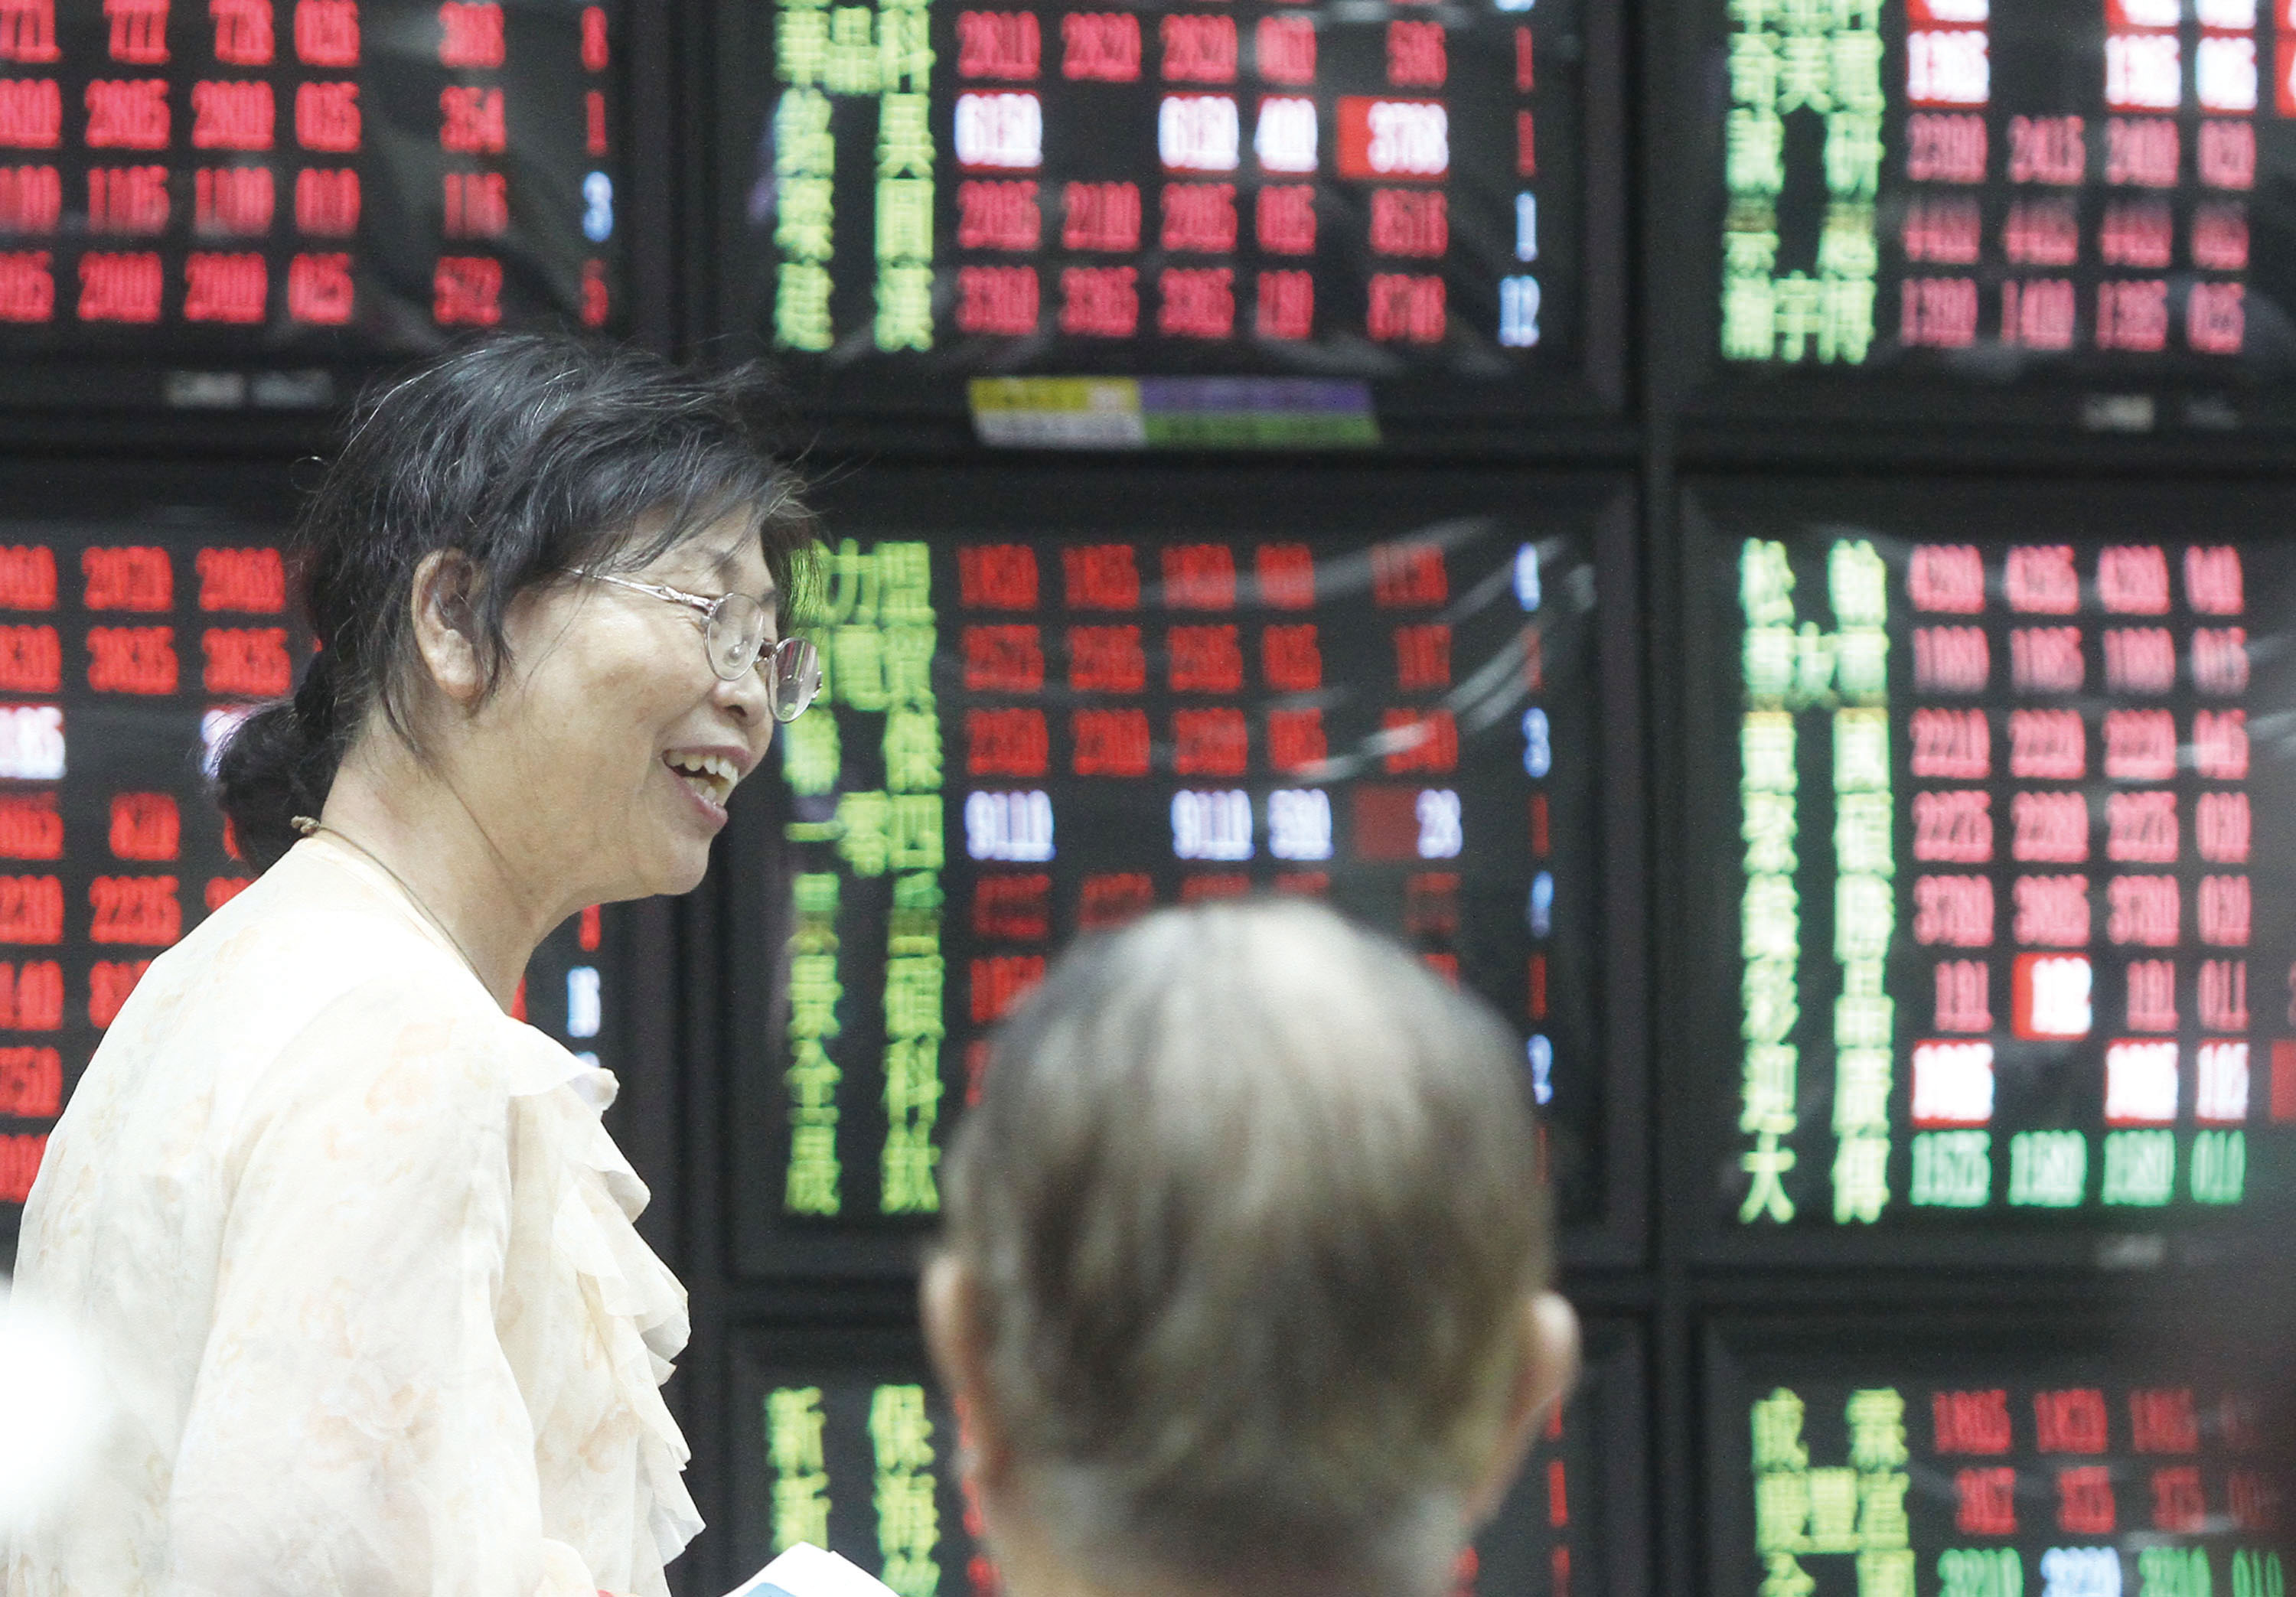 The Taiwan Stock Exchange's main index opened significantly higher Friday from its previous close, moving up 125.61 points at 7,585.92 on turnover of ...